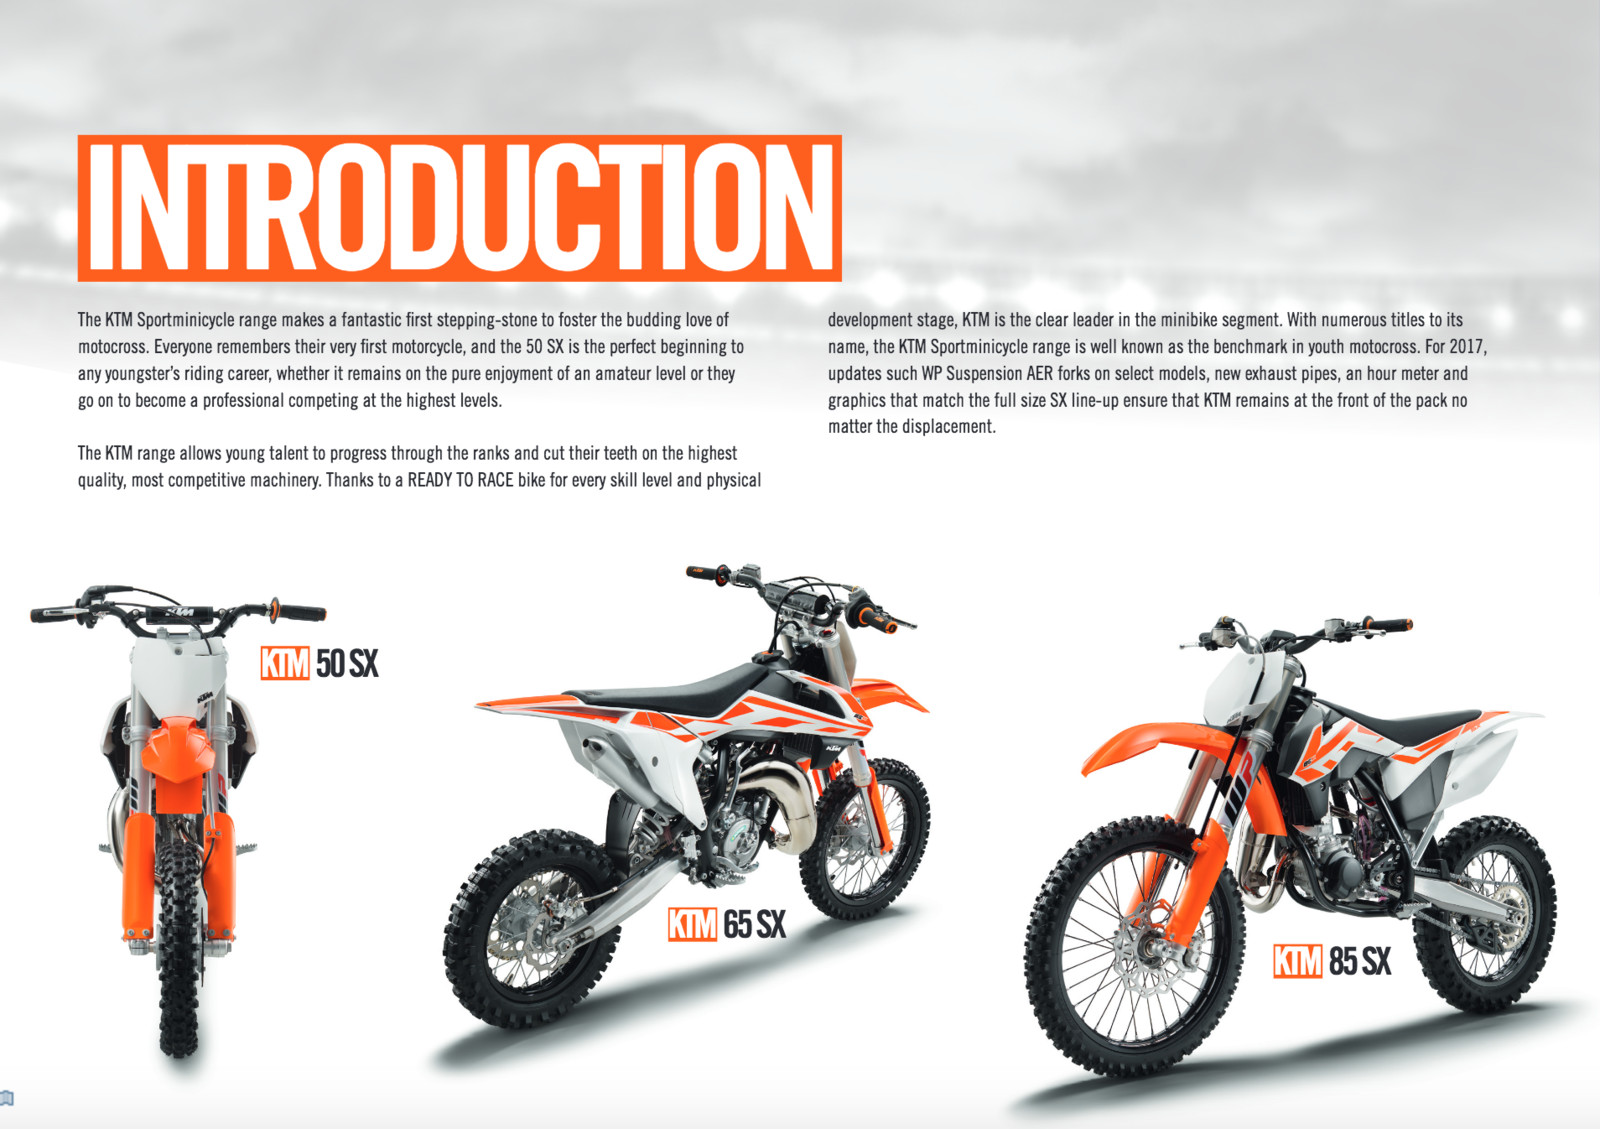 2017 Ktm 50 Sx First Look 65 And 85 Wiring Diagram Mini Model Line Overview